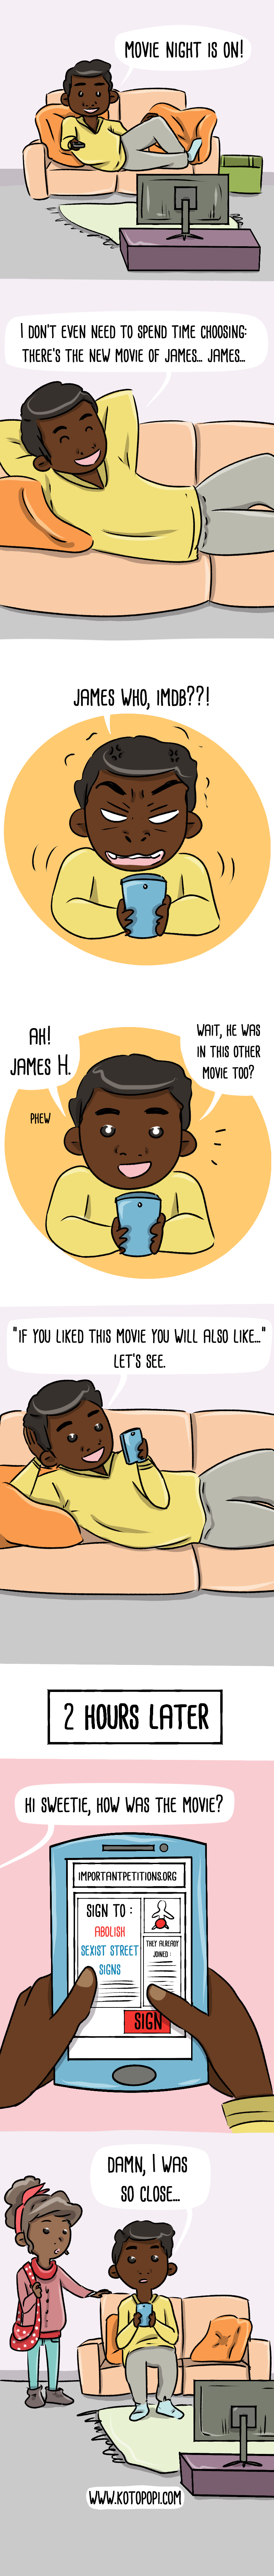 watching a movie is very difficult